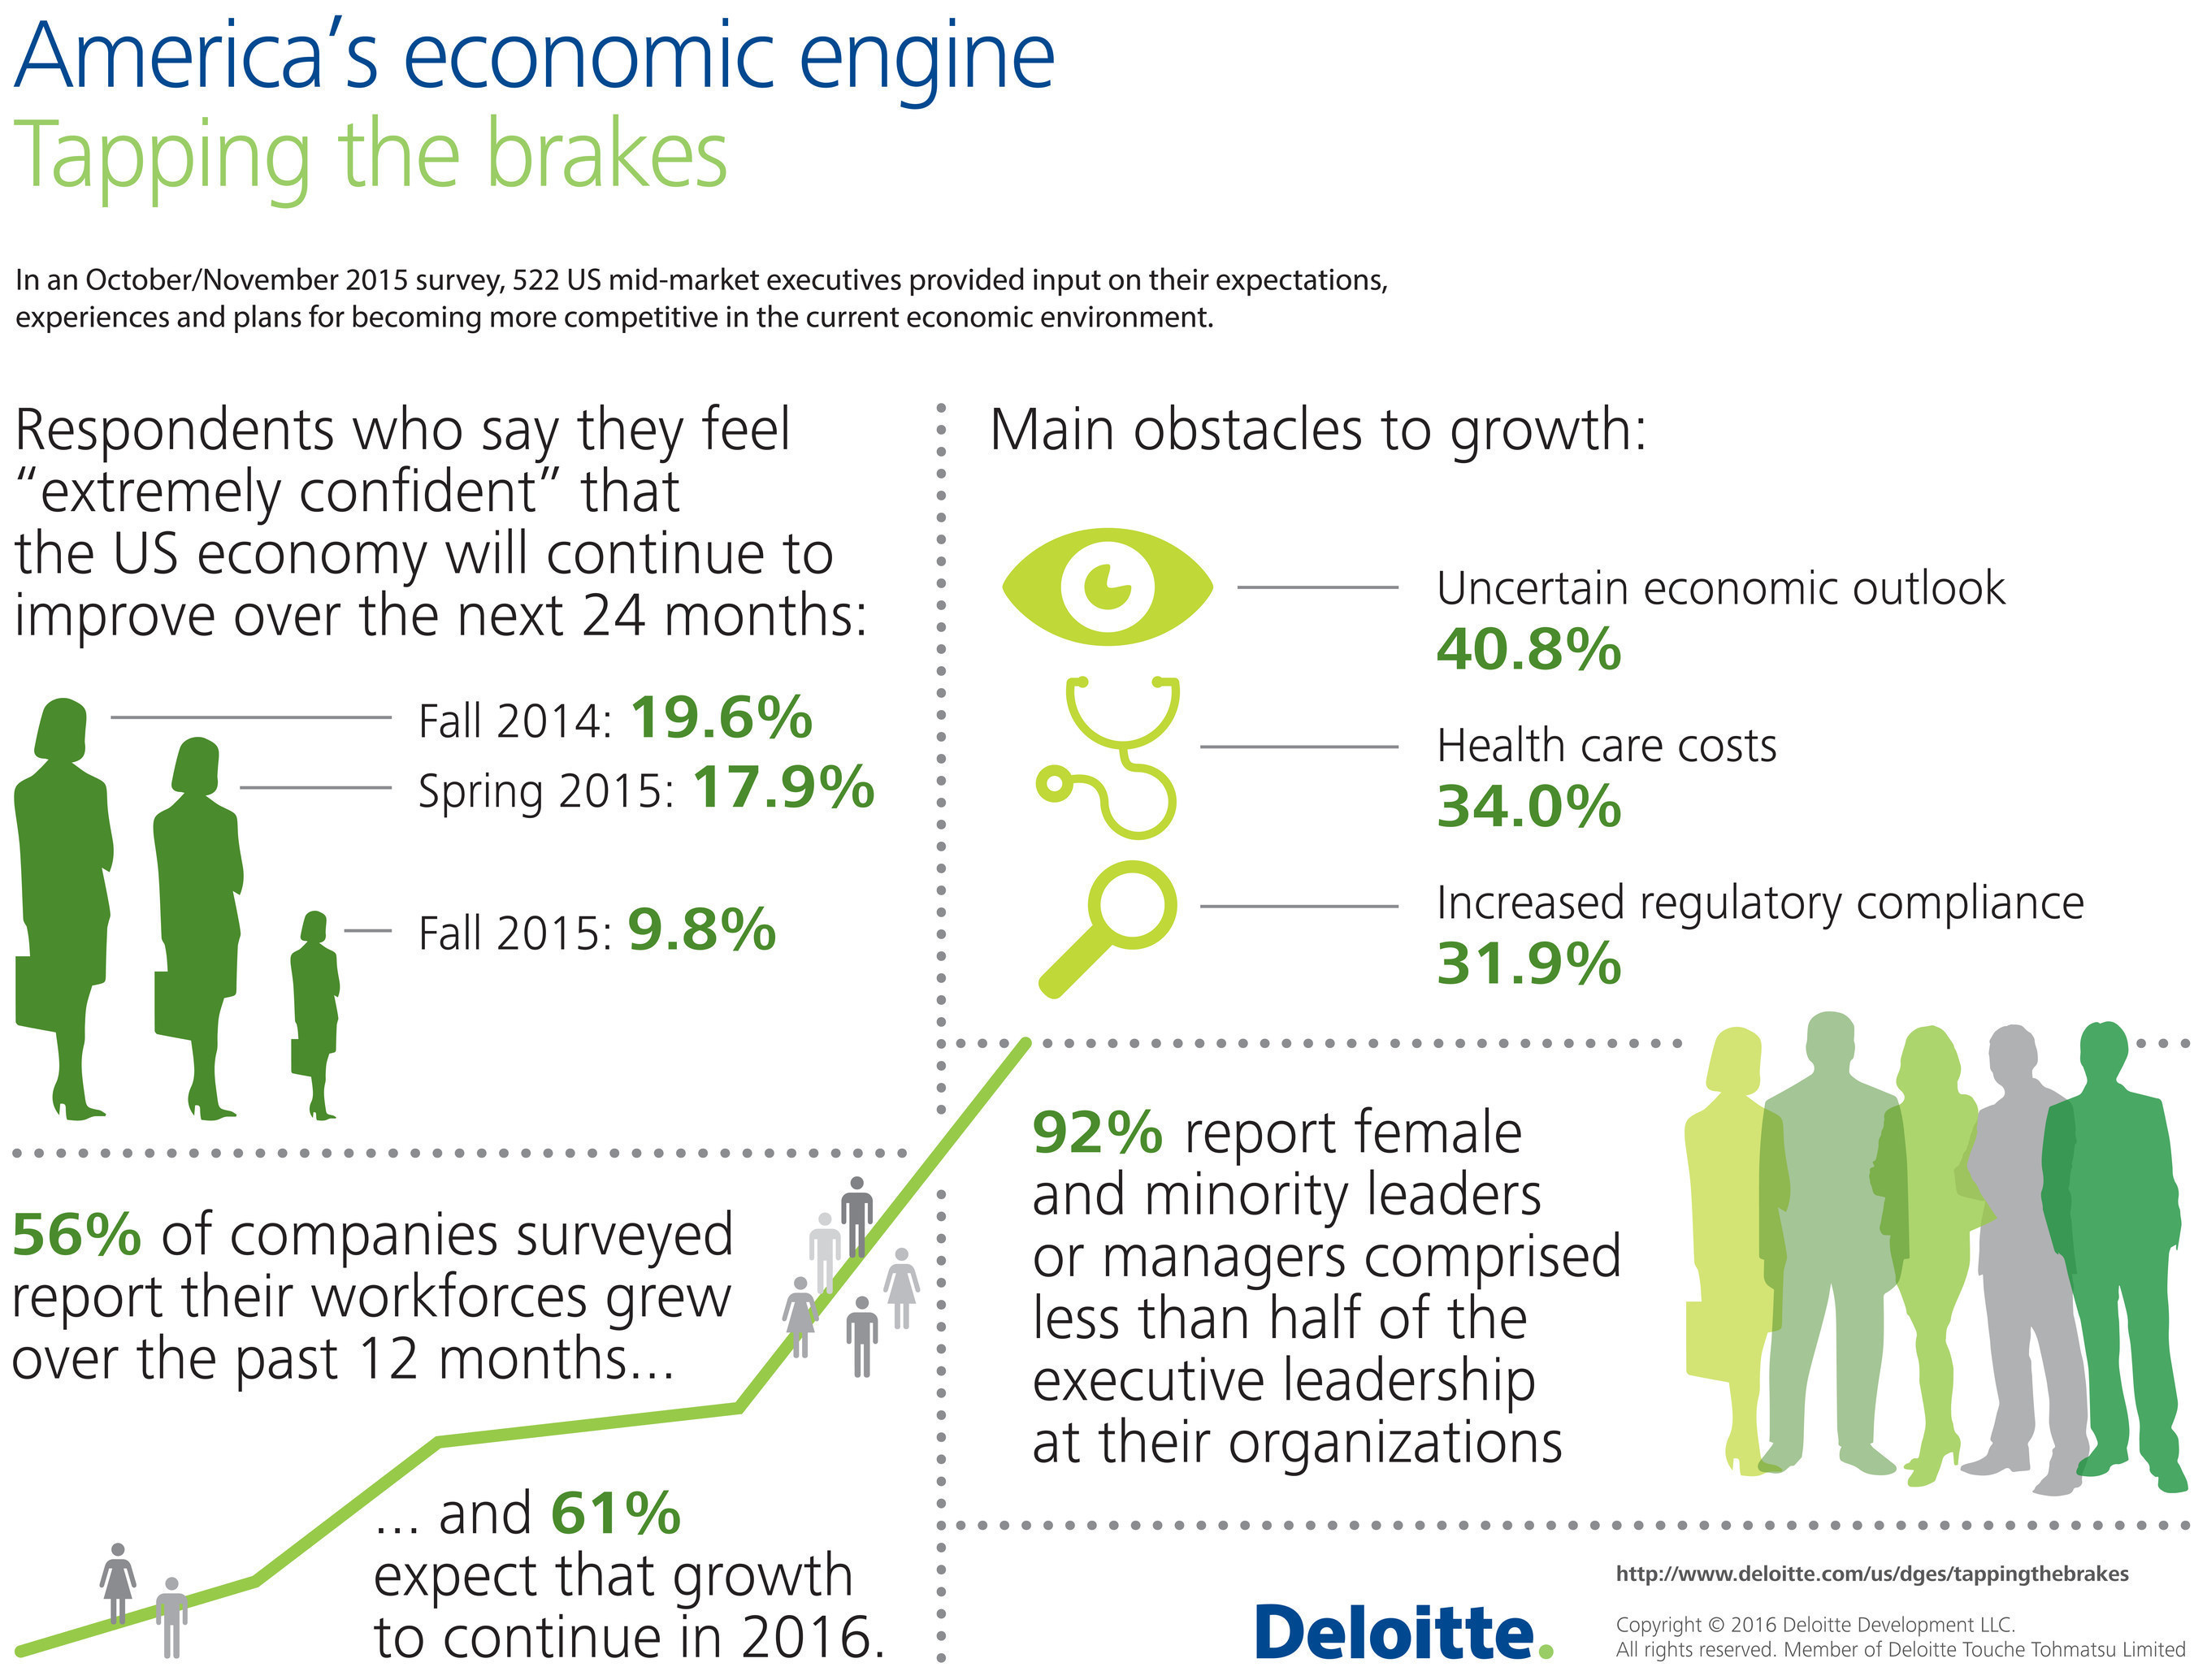 America's economic engine: Tapping the brakes